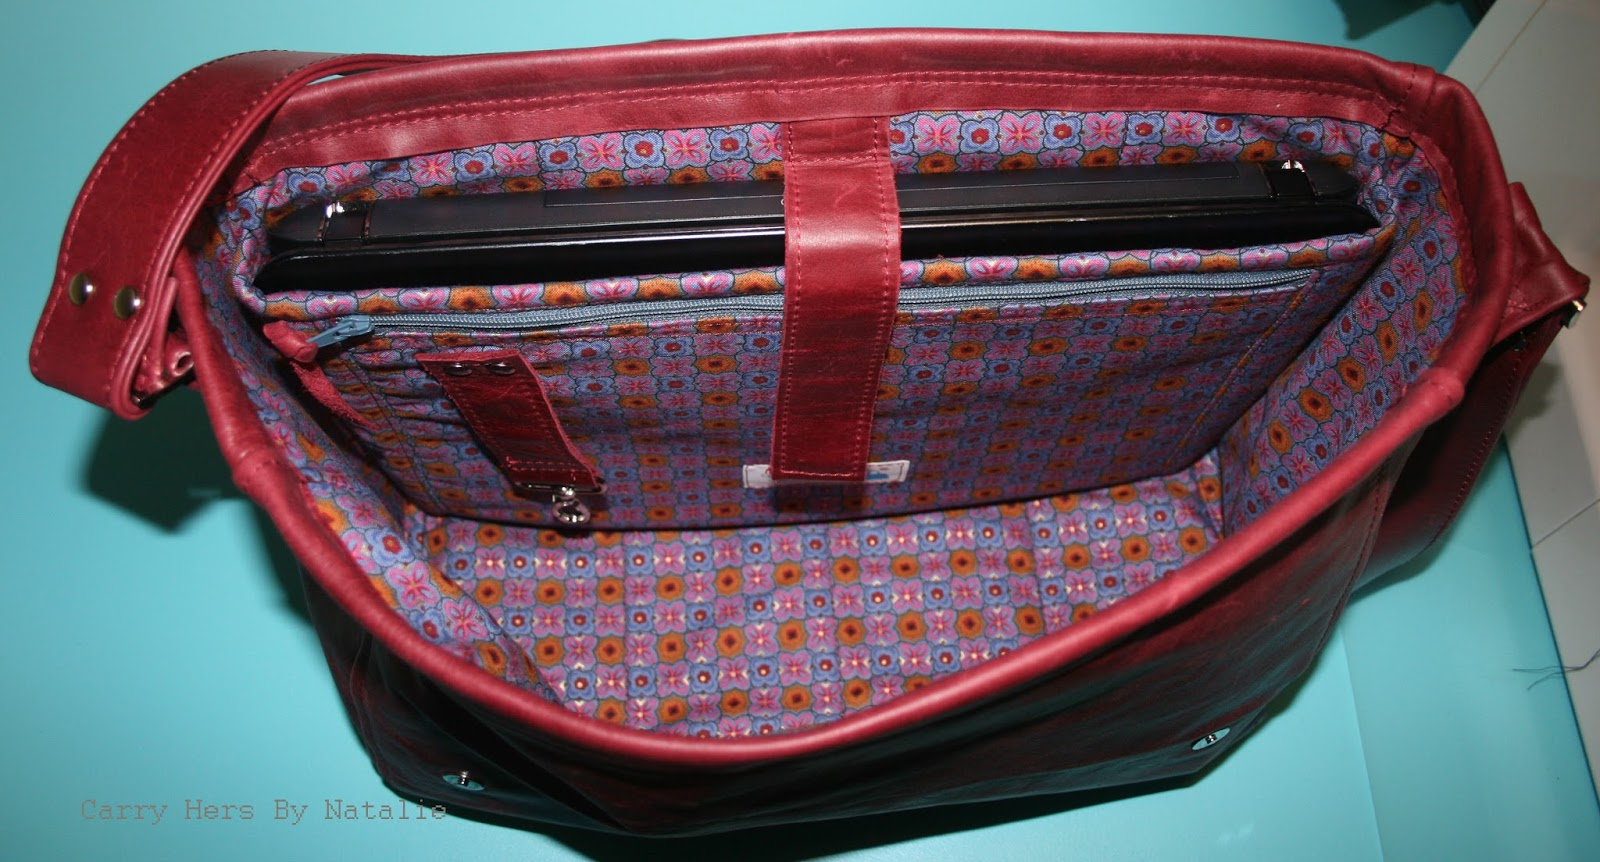 845a21c9bd61 Carry Hers By Natalie: Leather Messenger Bag......Sewing Summit here ...